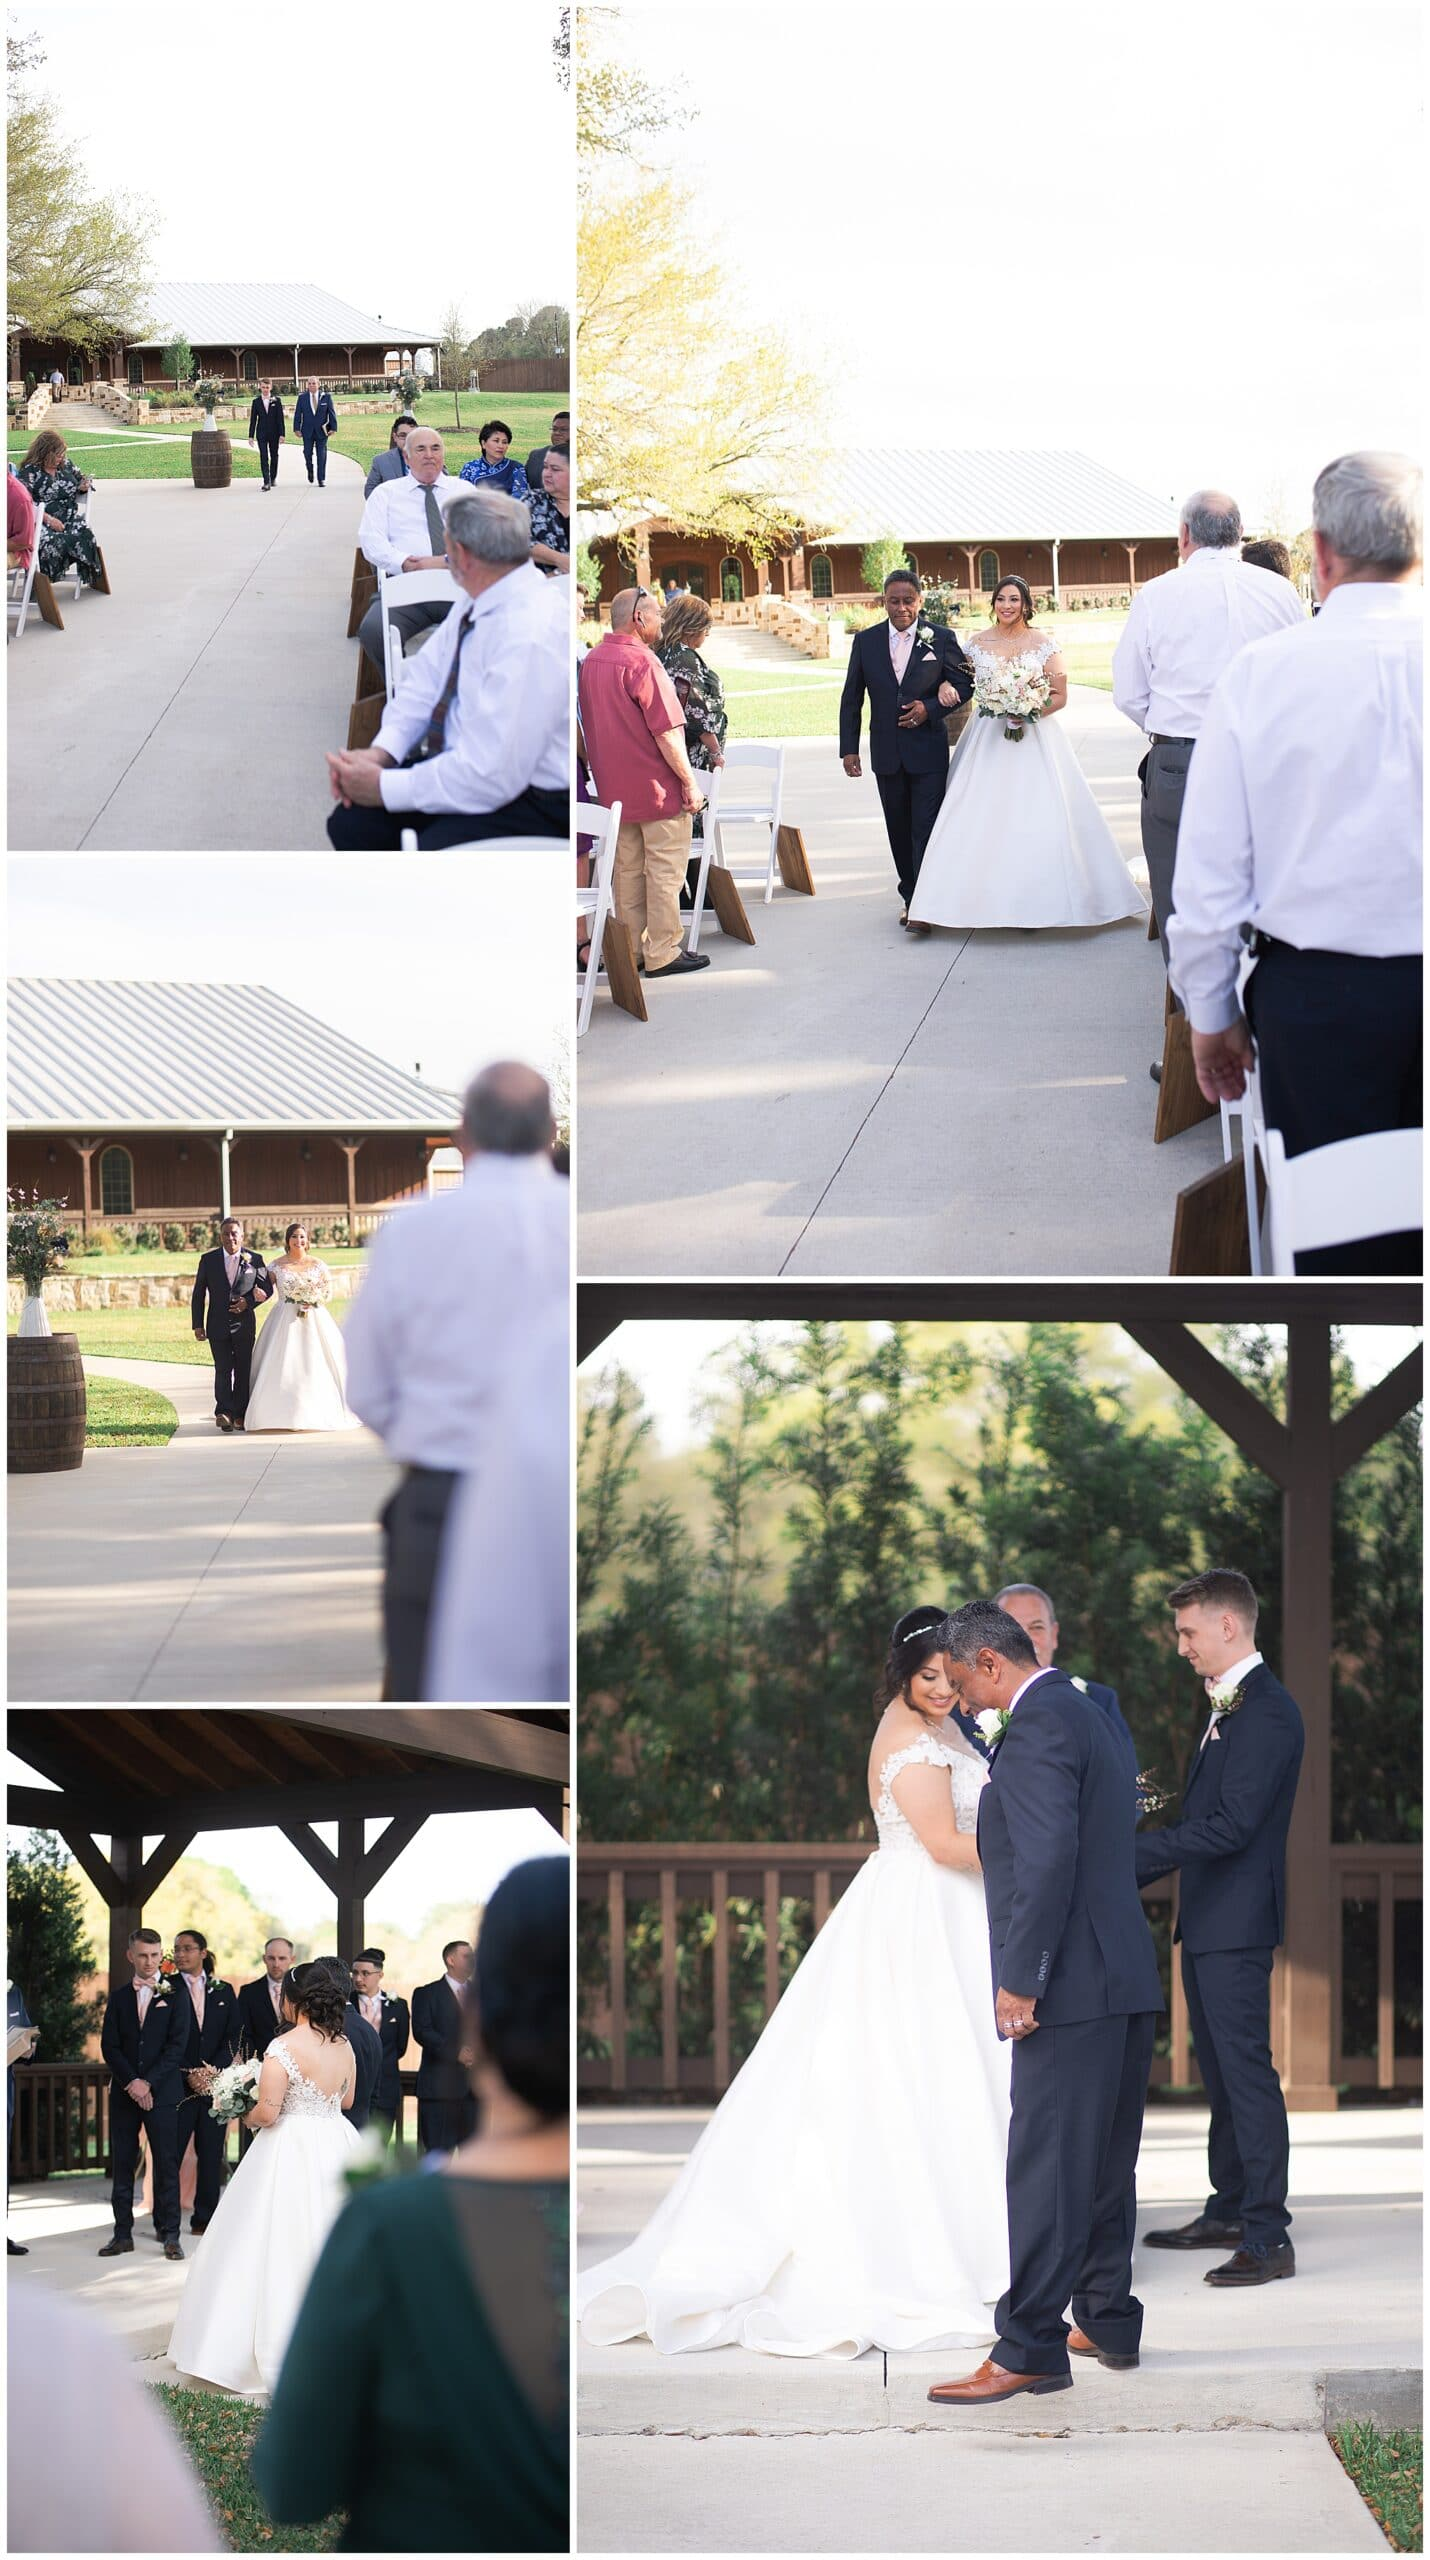 bride and groom walking down the aisle at Bridal Oaks in Cypress Texas by Houston wedding photographer Swish and Click Photography